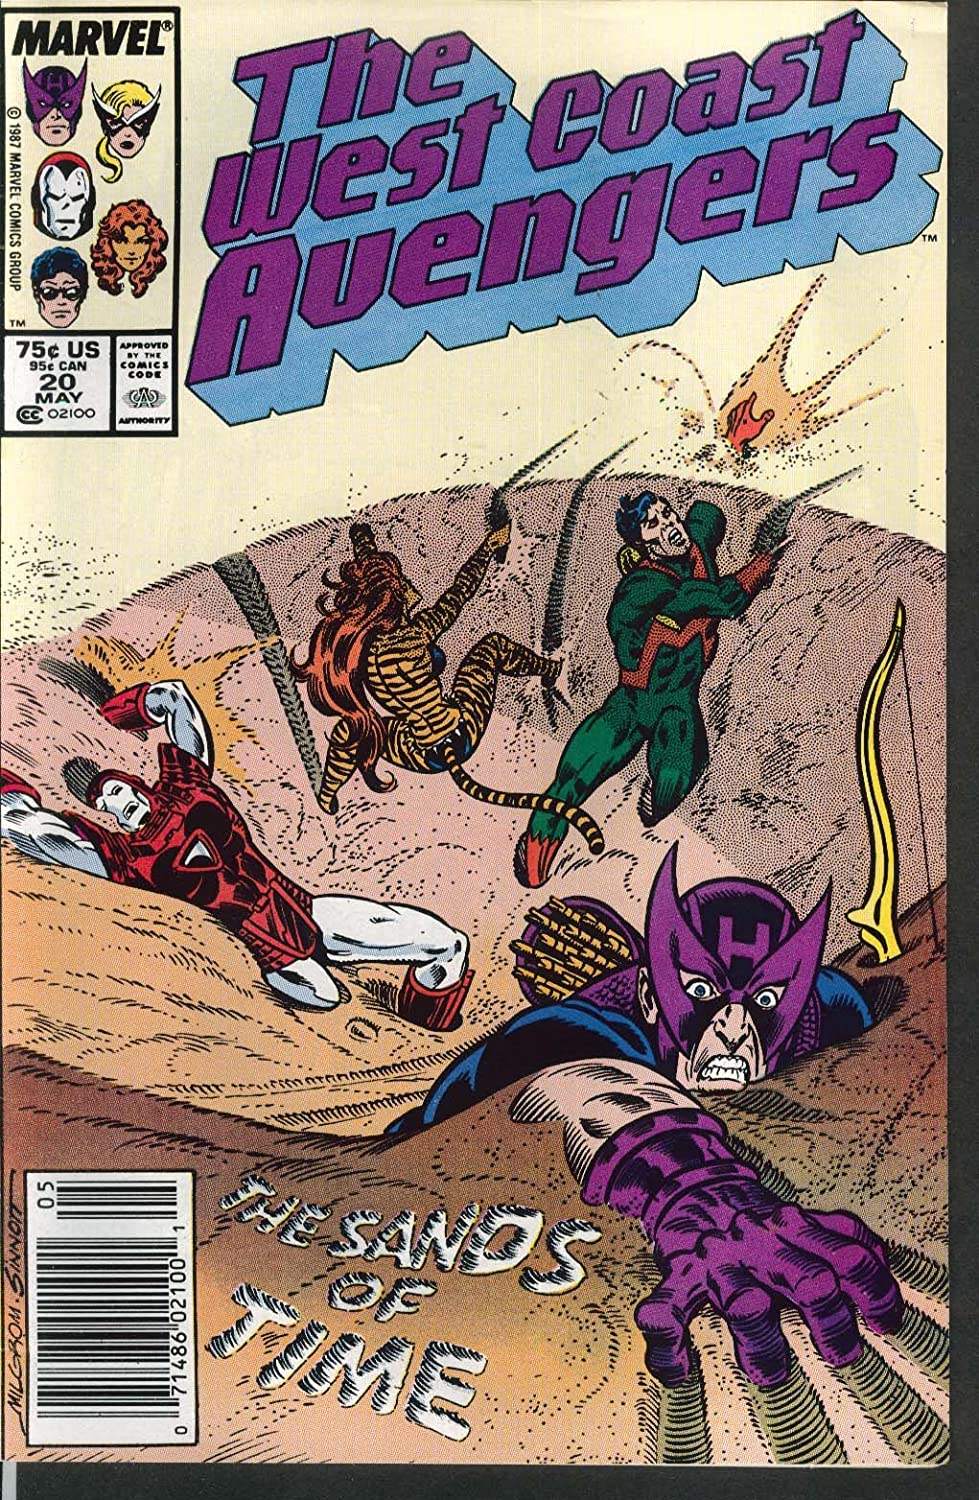 WEST COAST AVENGERS #20 Marvel comic book 5 1987 at Amazons Entertainment Collectibles Store